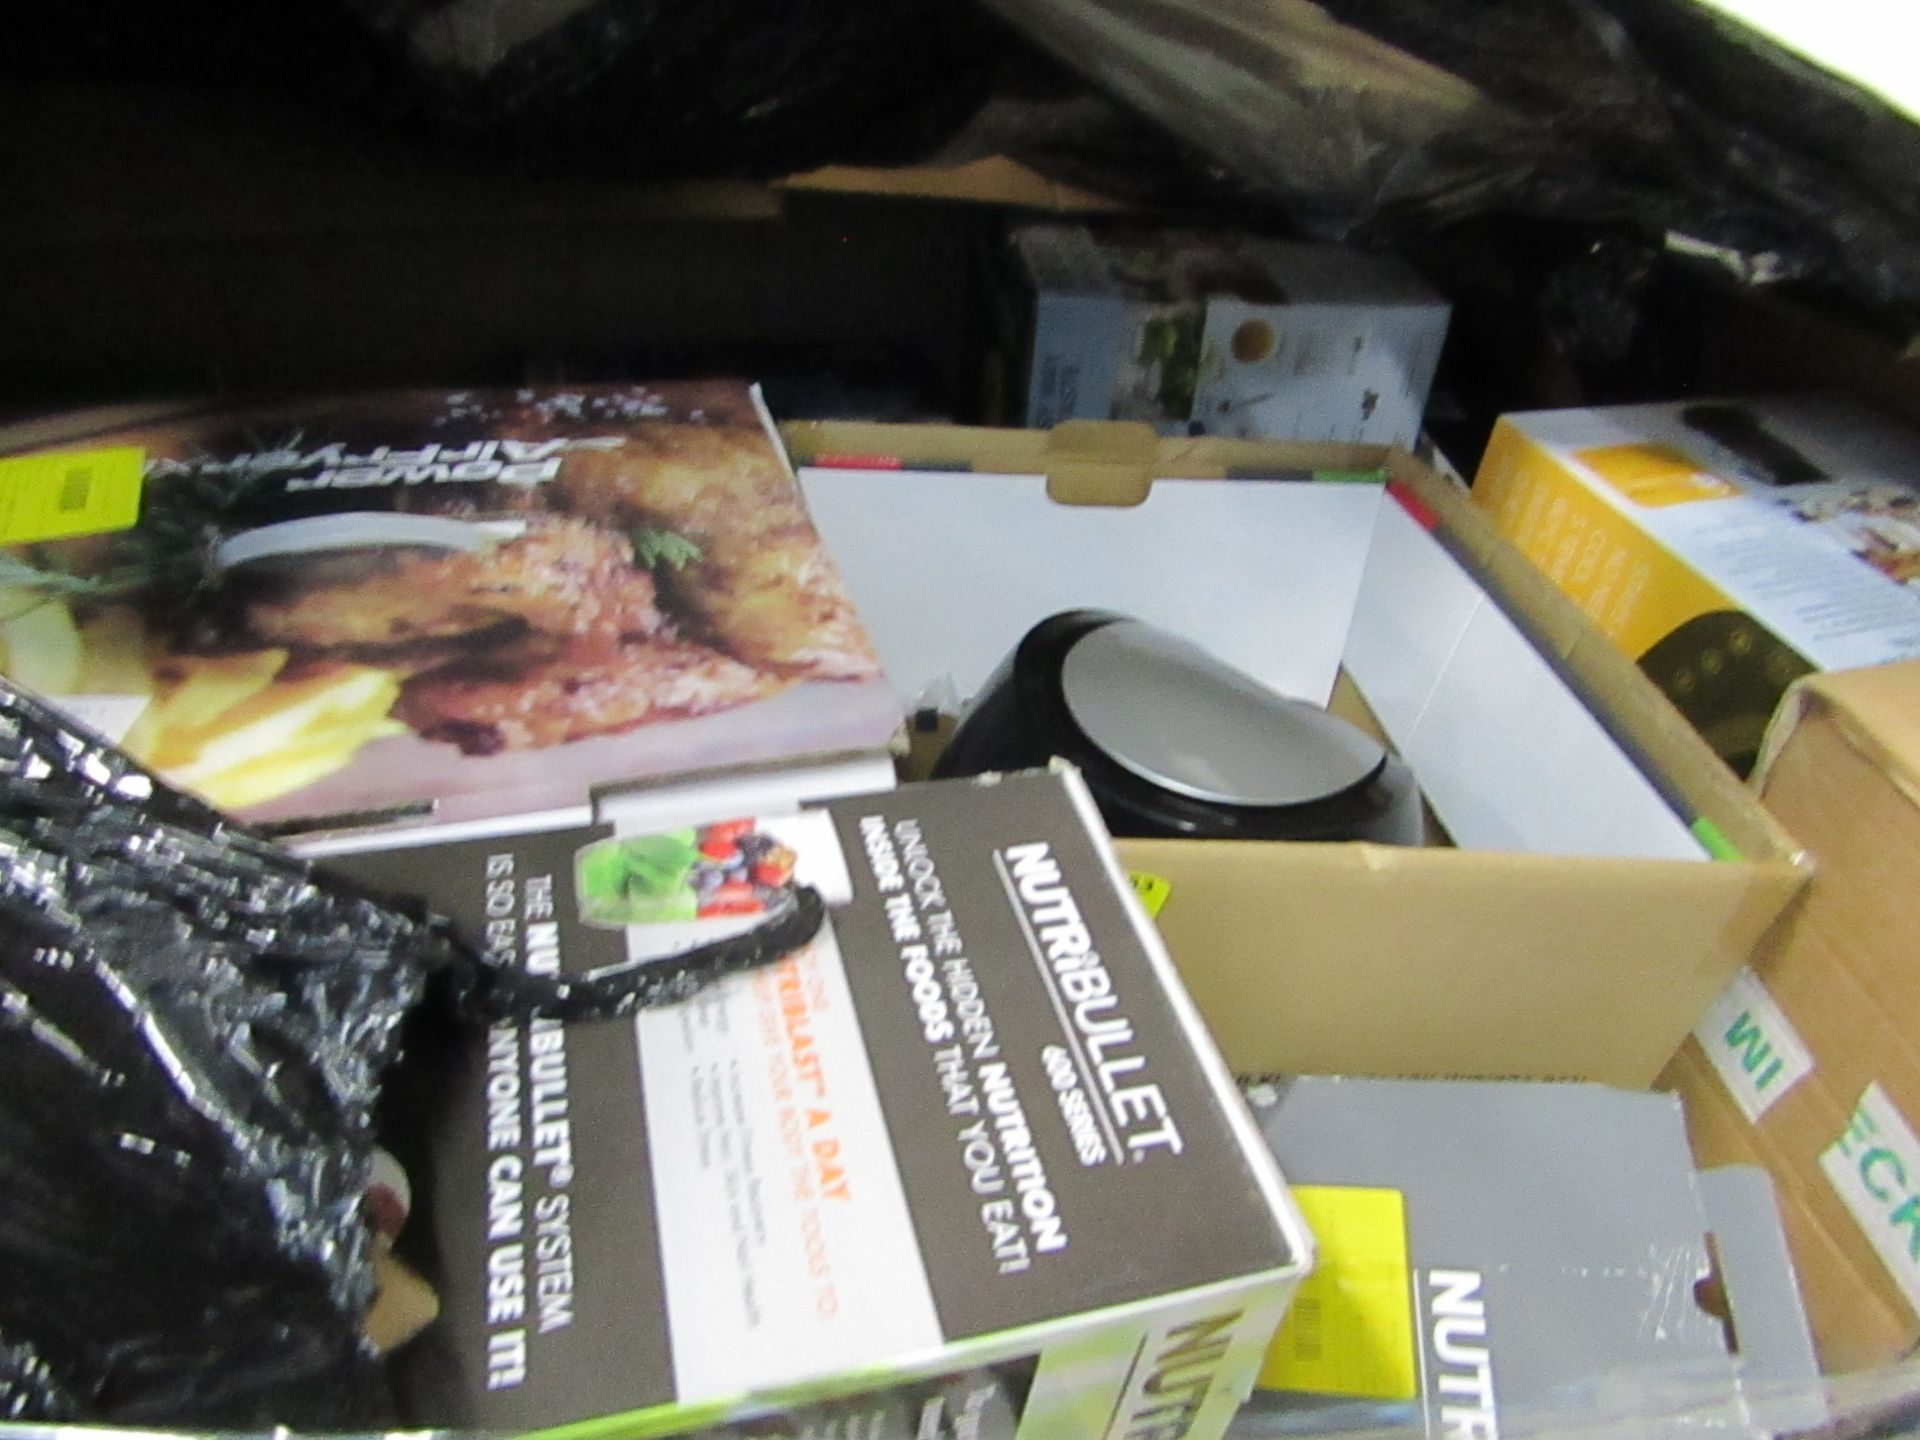 Lot 22 - | APPROX 45X | THE PALLET CONTAINS NUTRI BULLET, AIR FRYER XL'S, AIR HAWK AND MORE | BOXED AND